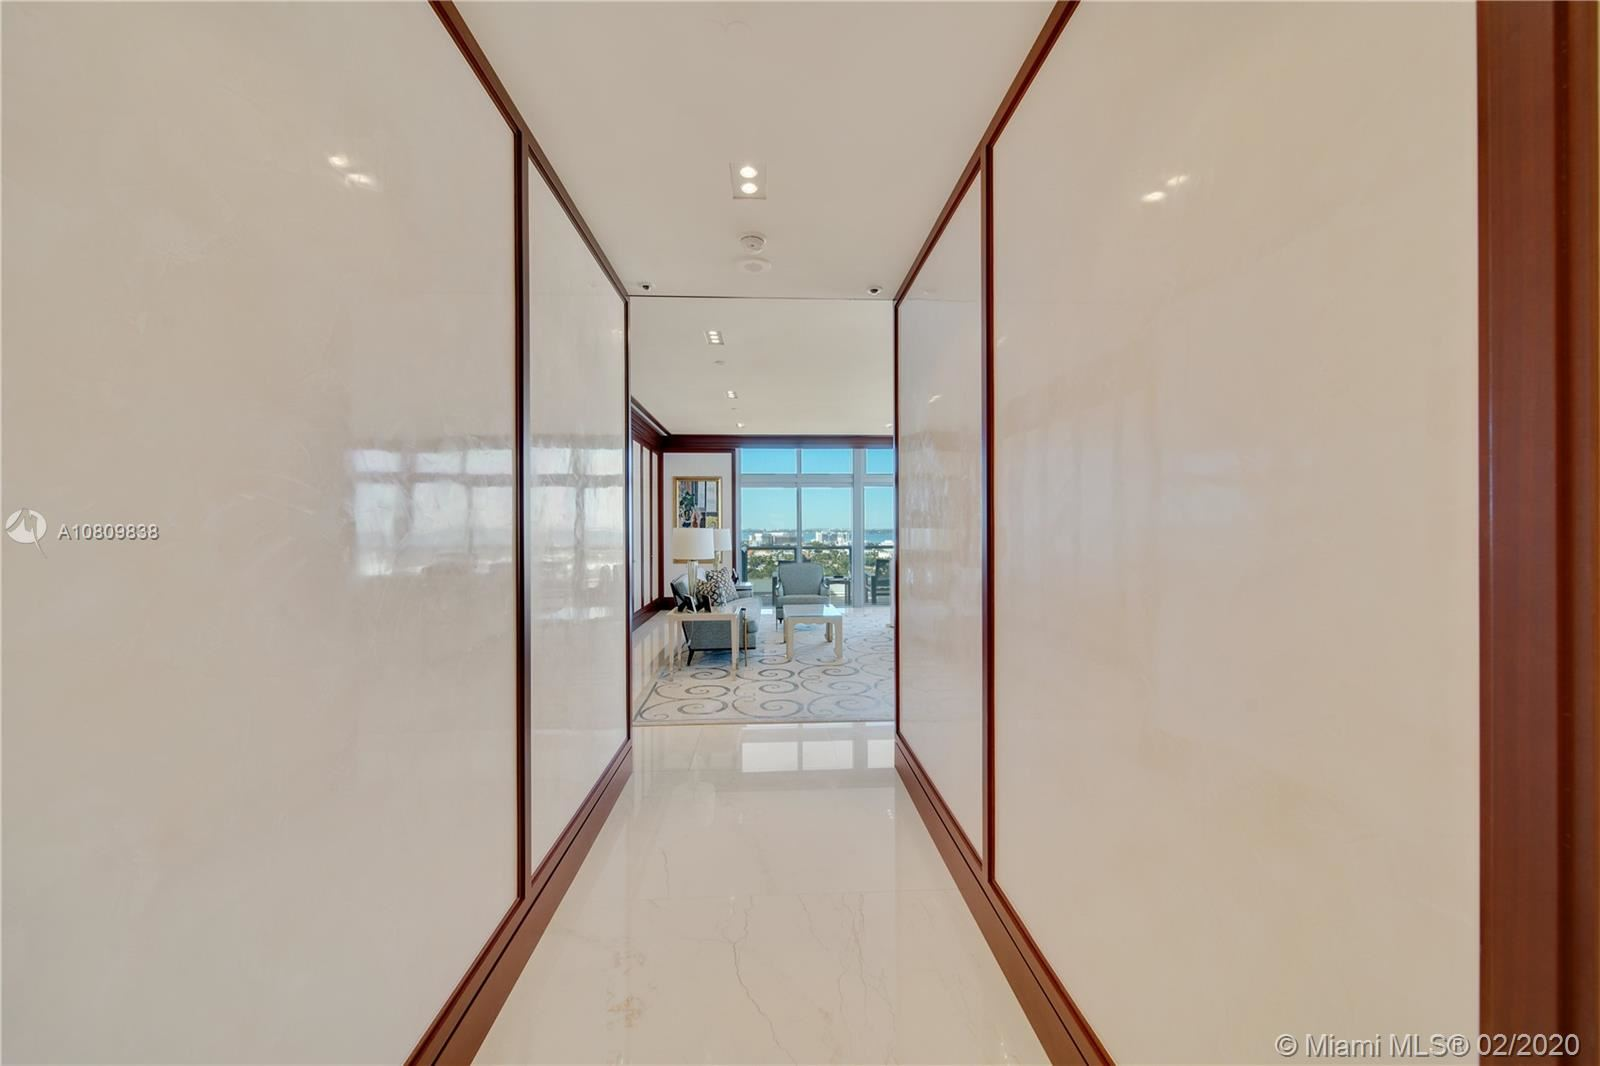 Photo 16 of Listing MLS a10809838 in 3737 Collins Ave #PH-4 Miami Beach FL 33140